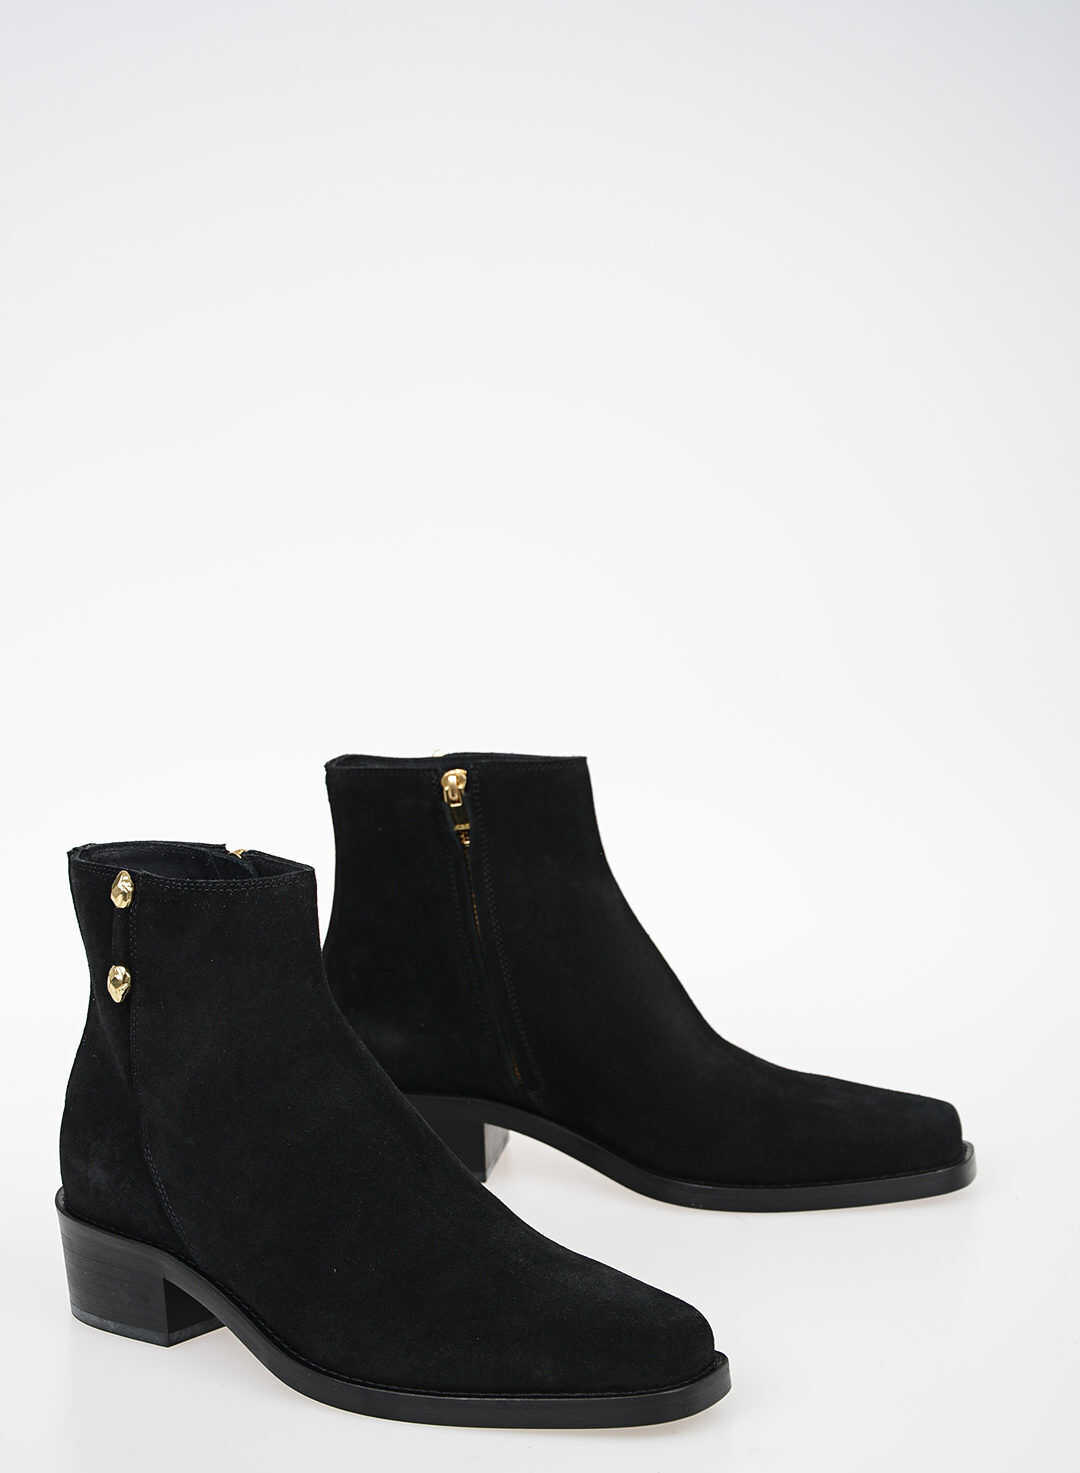 Just Cavalli Suede Leather Ankle Boots BLACK